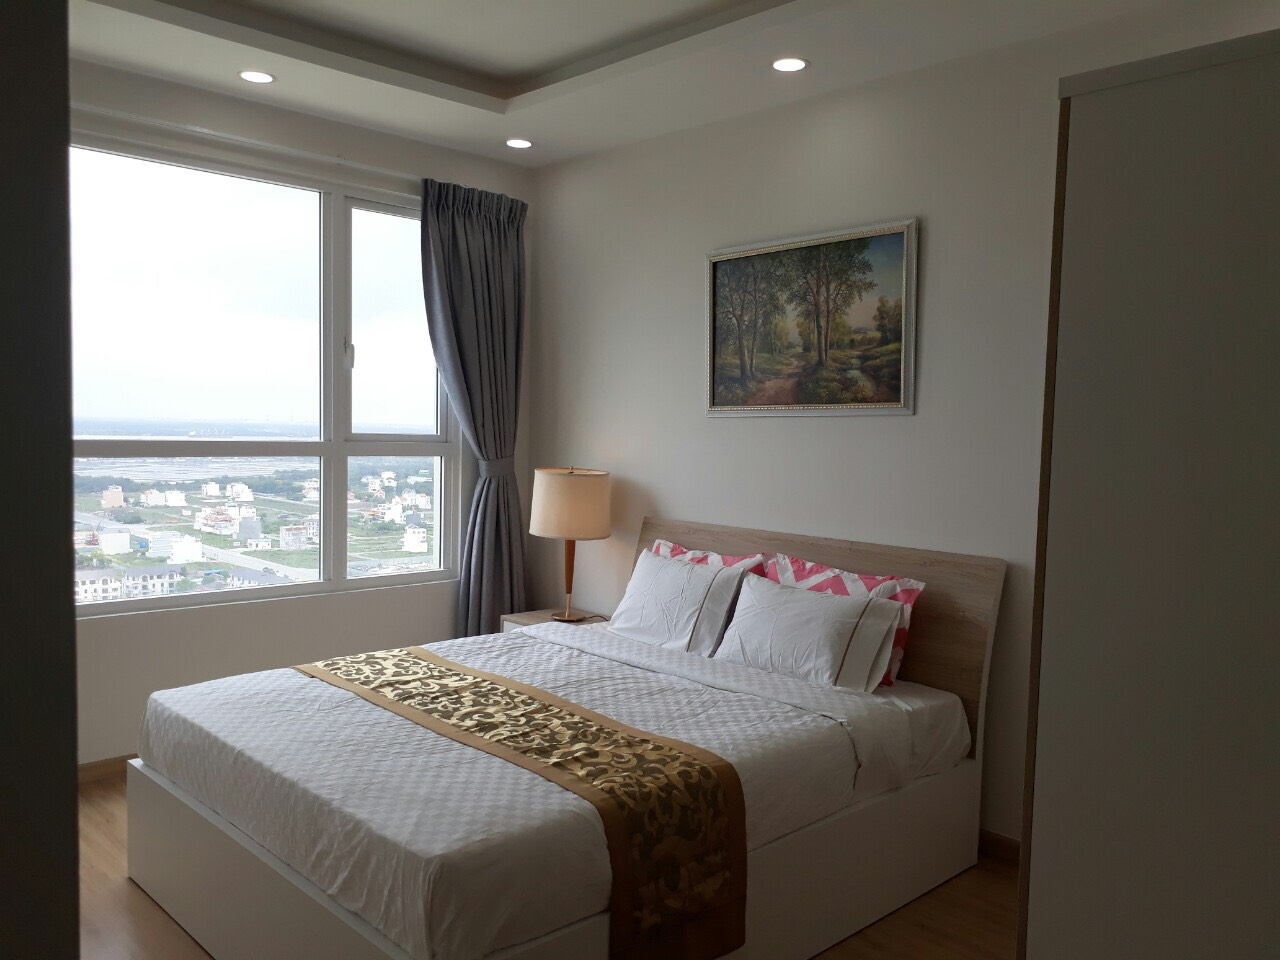 apartment for rent in district 2 hcmc vista verde apartment for rent in district 2 hcmc D221415 (5)